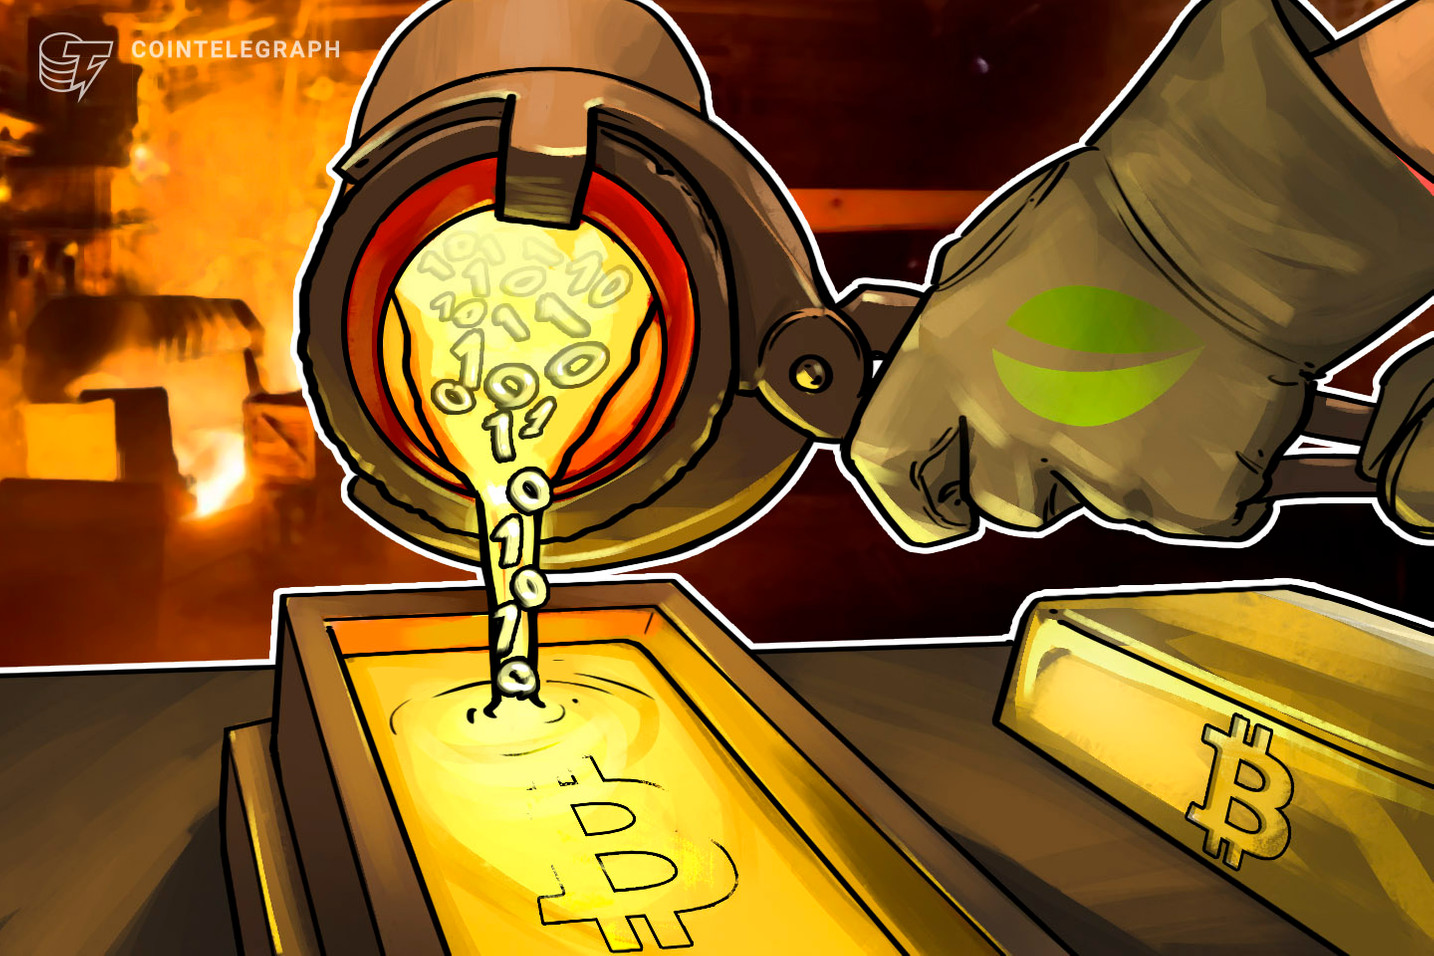 Bitfinex Users Can Now Trade Tether Gold Stablecoin Against Bitcoin